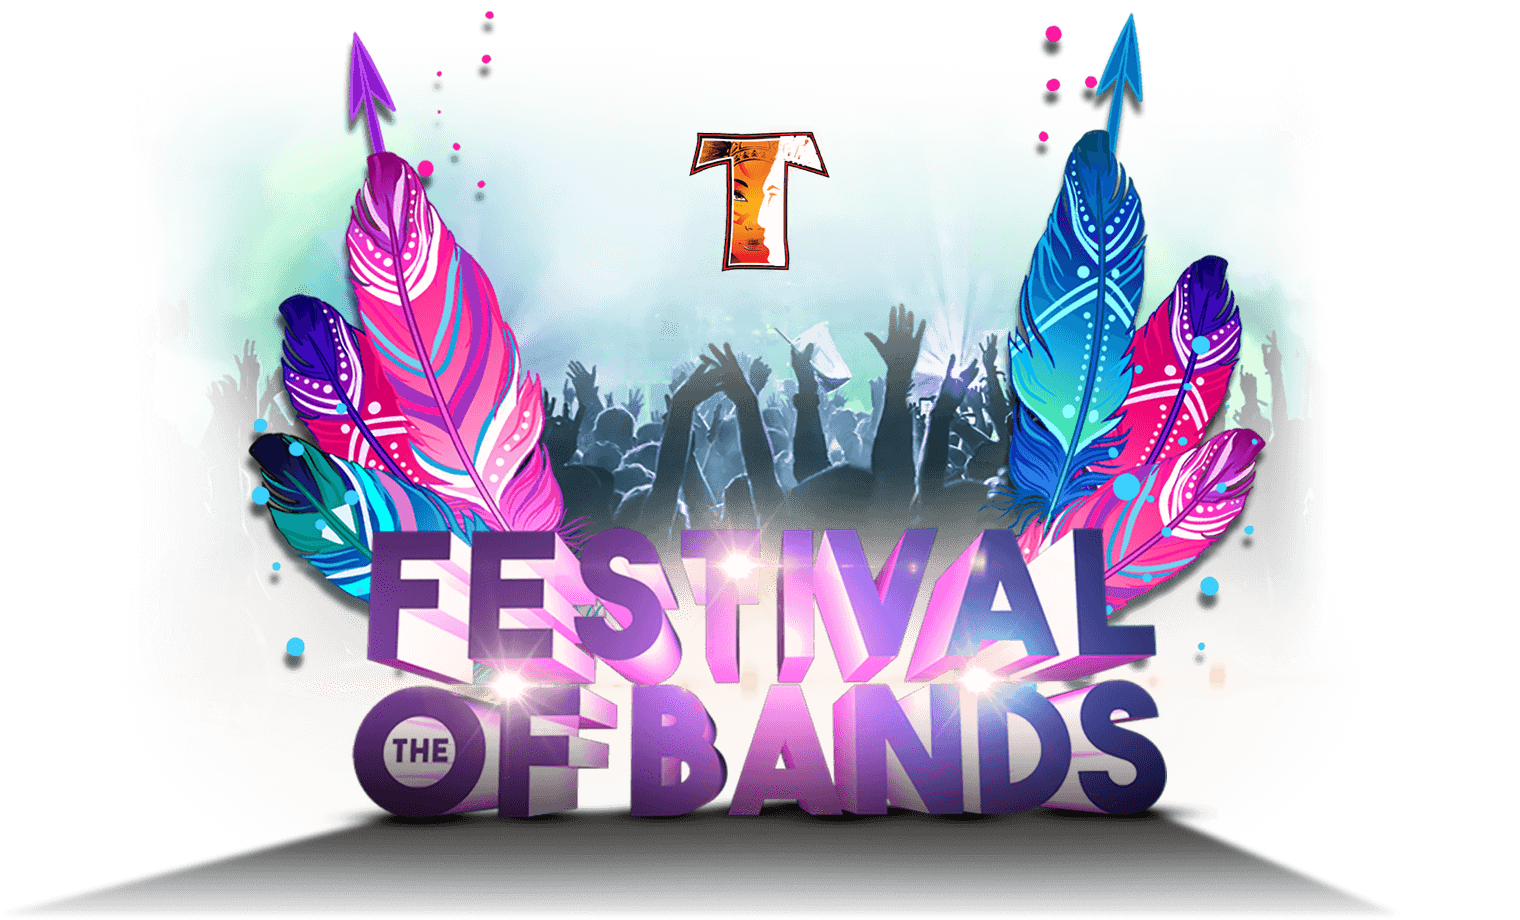 Festival of the Bands